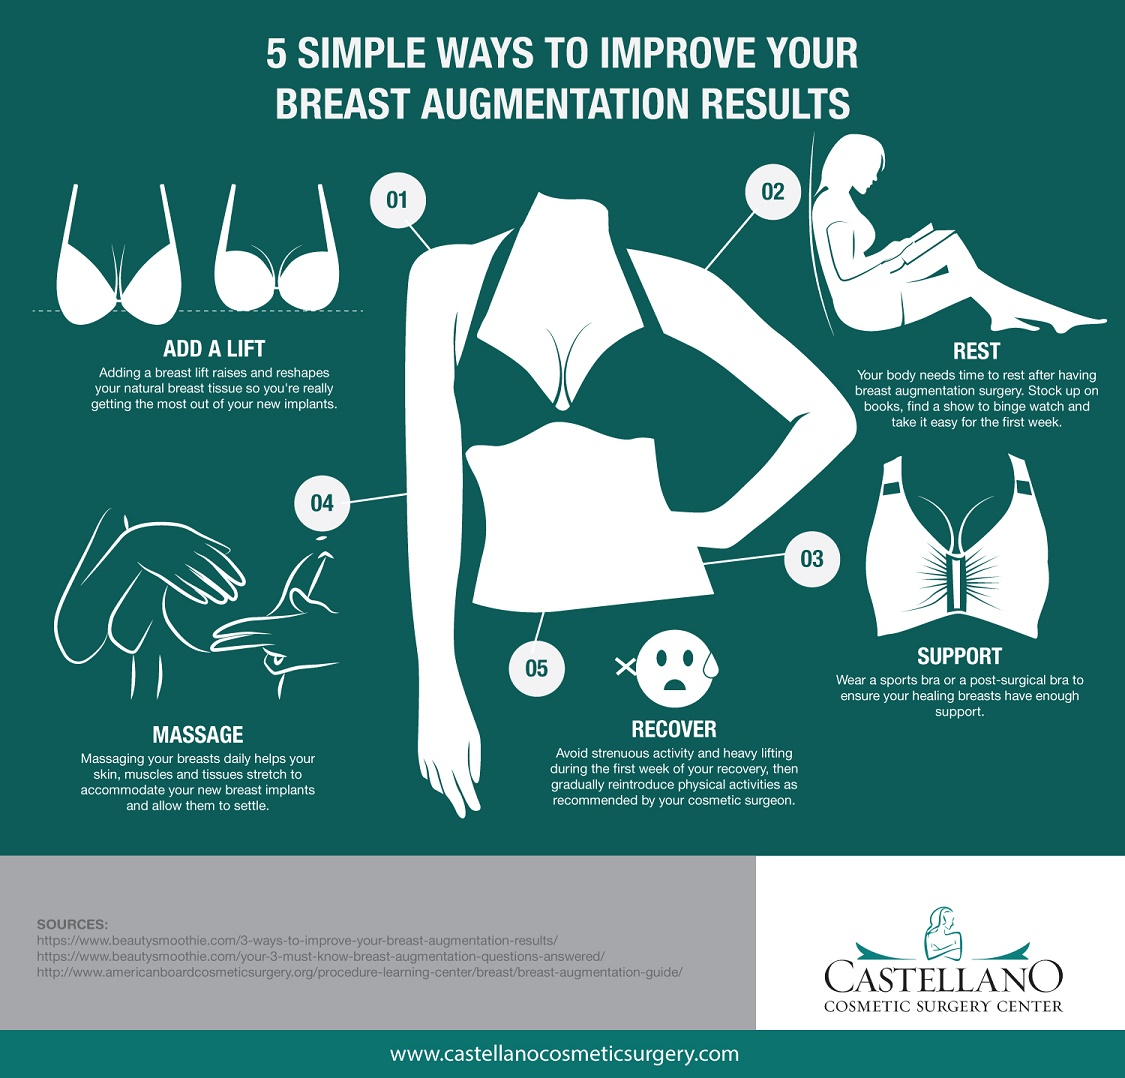 5 Easy Ways To Improve Your Breast Augmentation Results Infographic